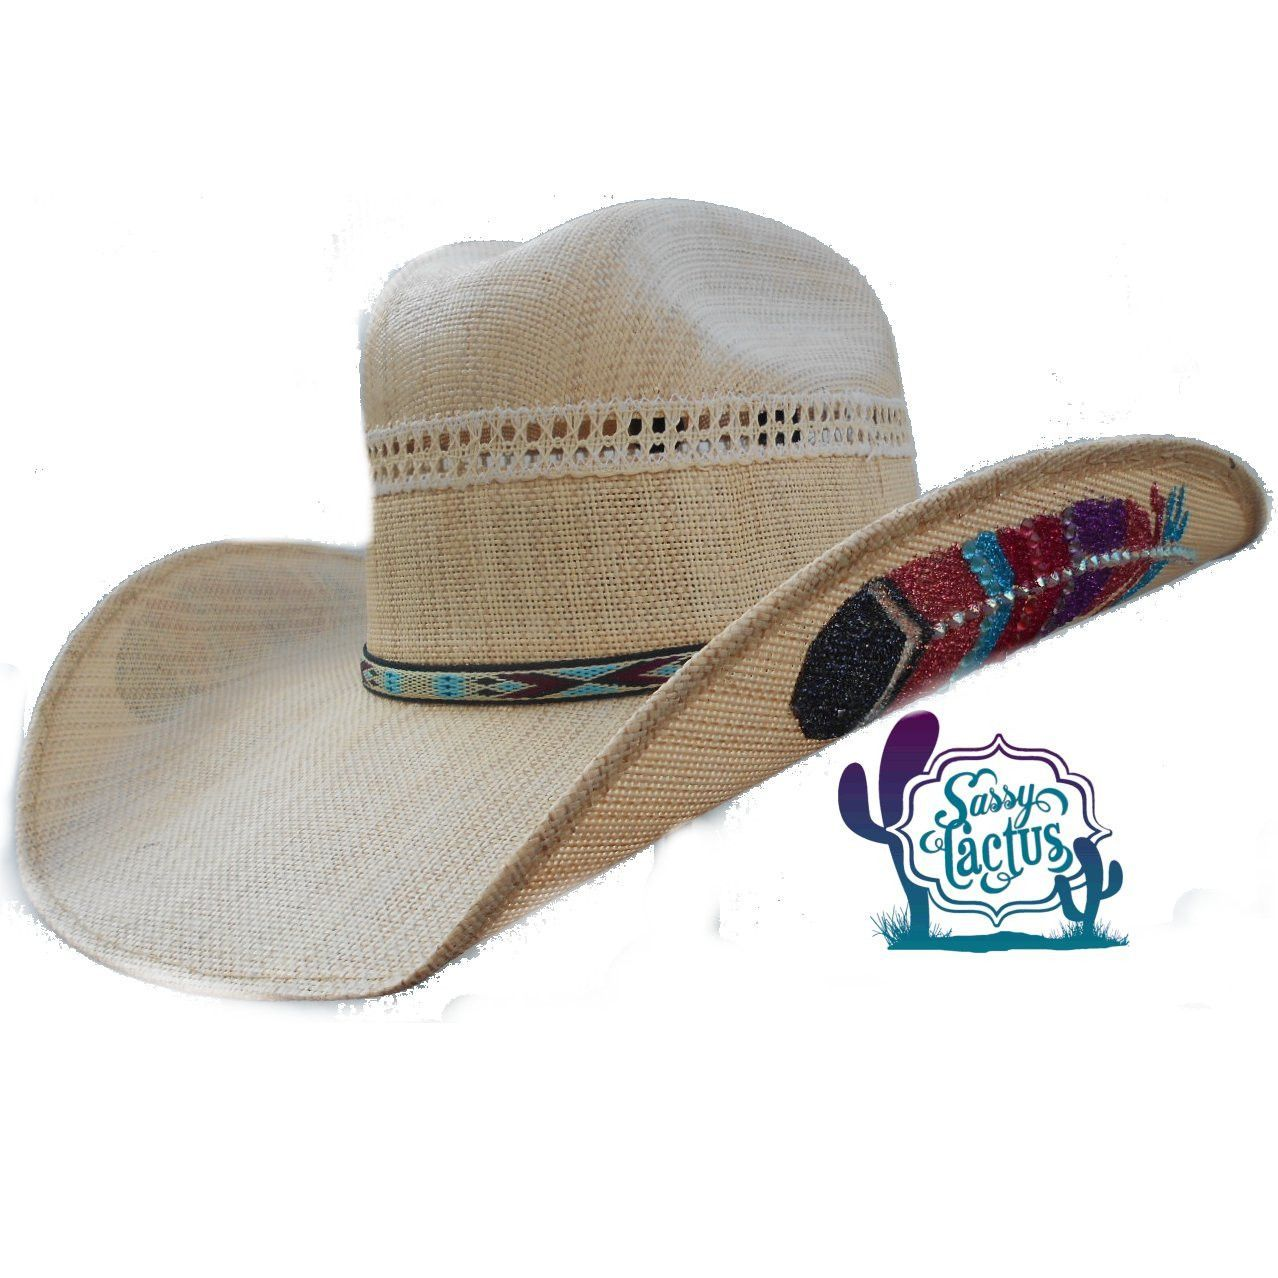 Rhinestones and glitter make up the Native American inspired feather design  on both sides of this pretty straw cowboy hat by Bullhide Hat Company. 41adf6bca7e